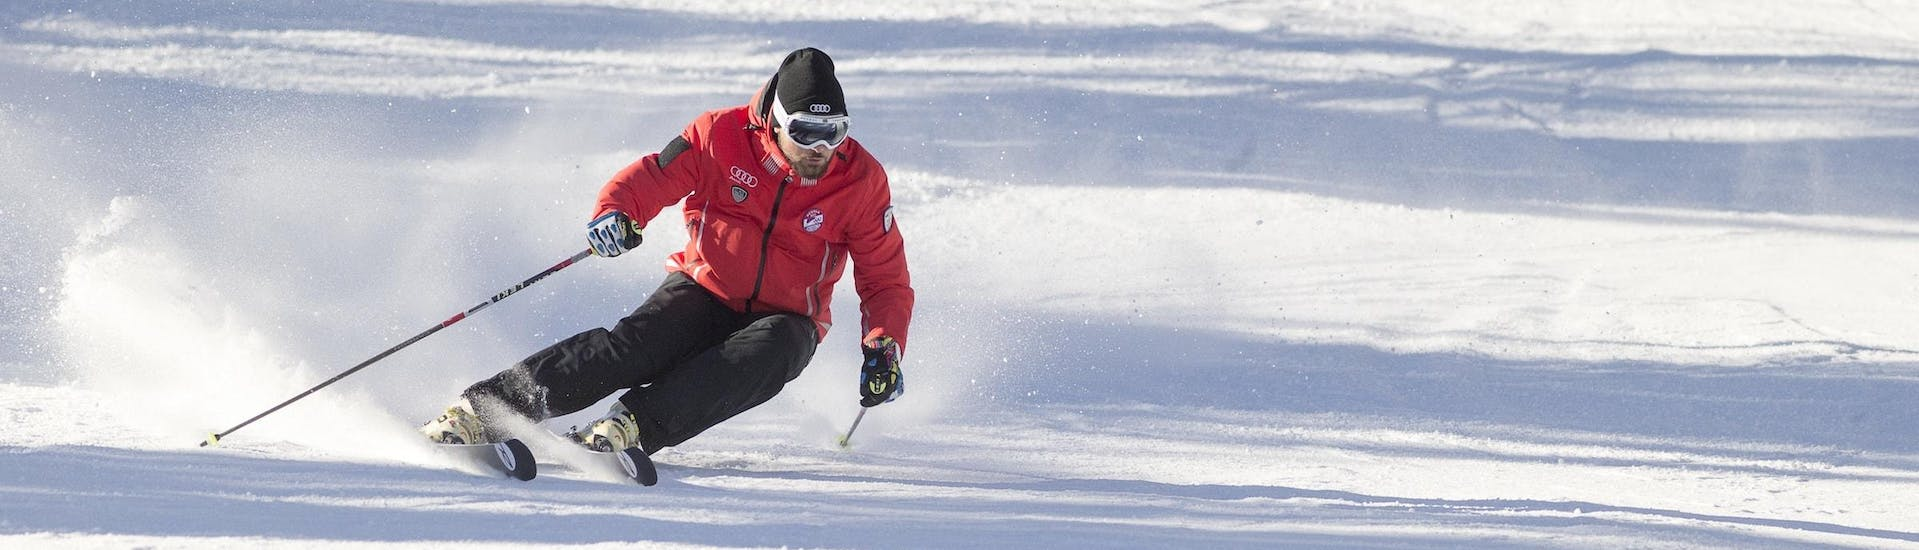 A ski instructor from Scuola Sci Cortina is demonstrating the right skiing technique during one of the Ski Lessons for Adults - First Timer in the ski resort of Cortina d'Ampezzo.